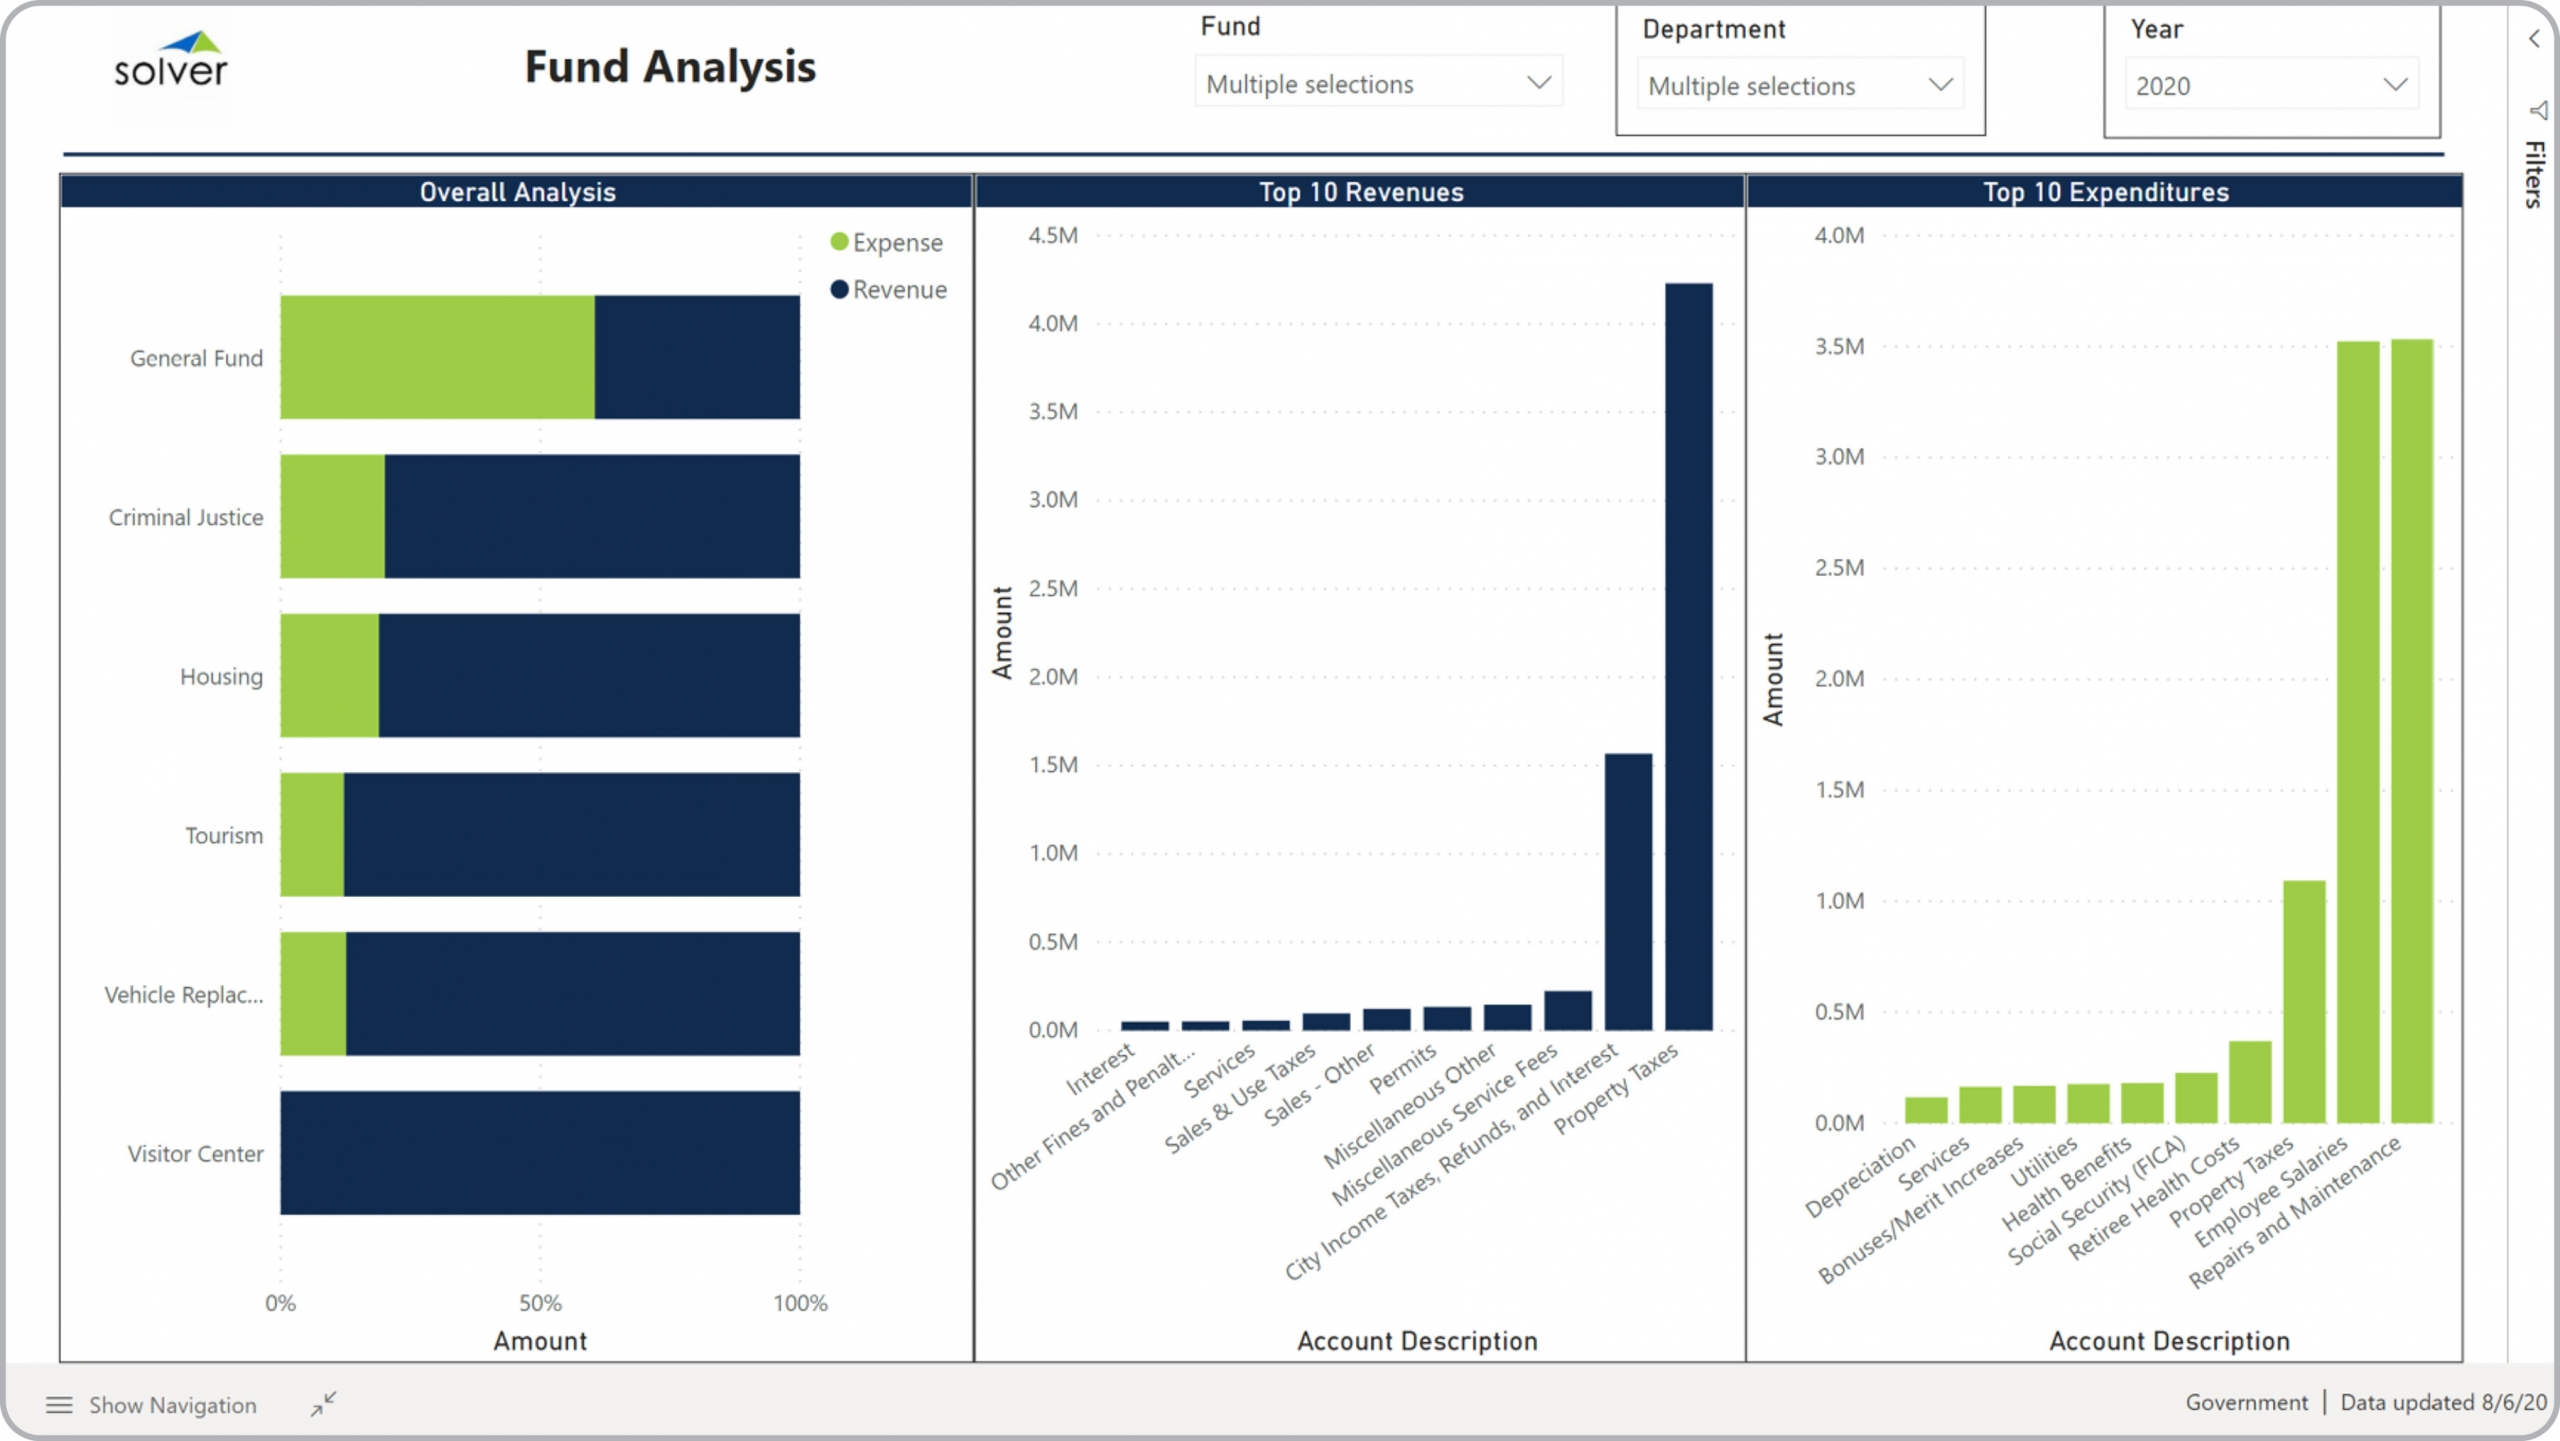 Example of a Fund Budget Analysis Dashboard for Public Sector